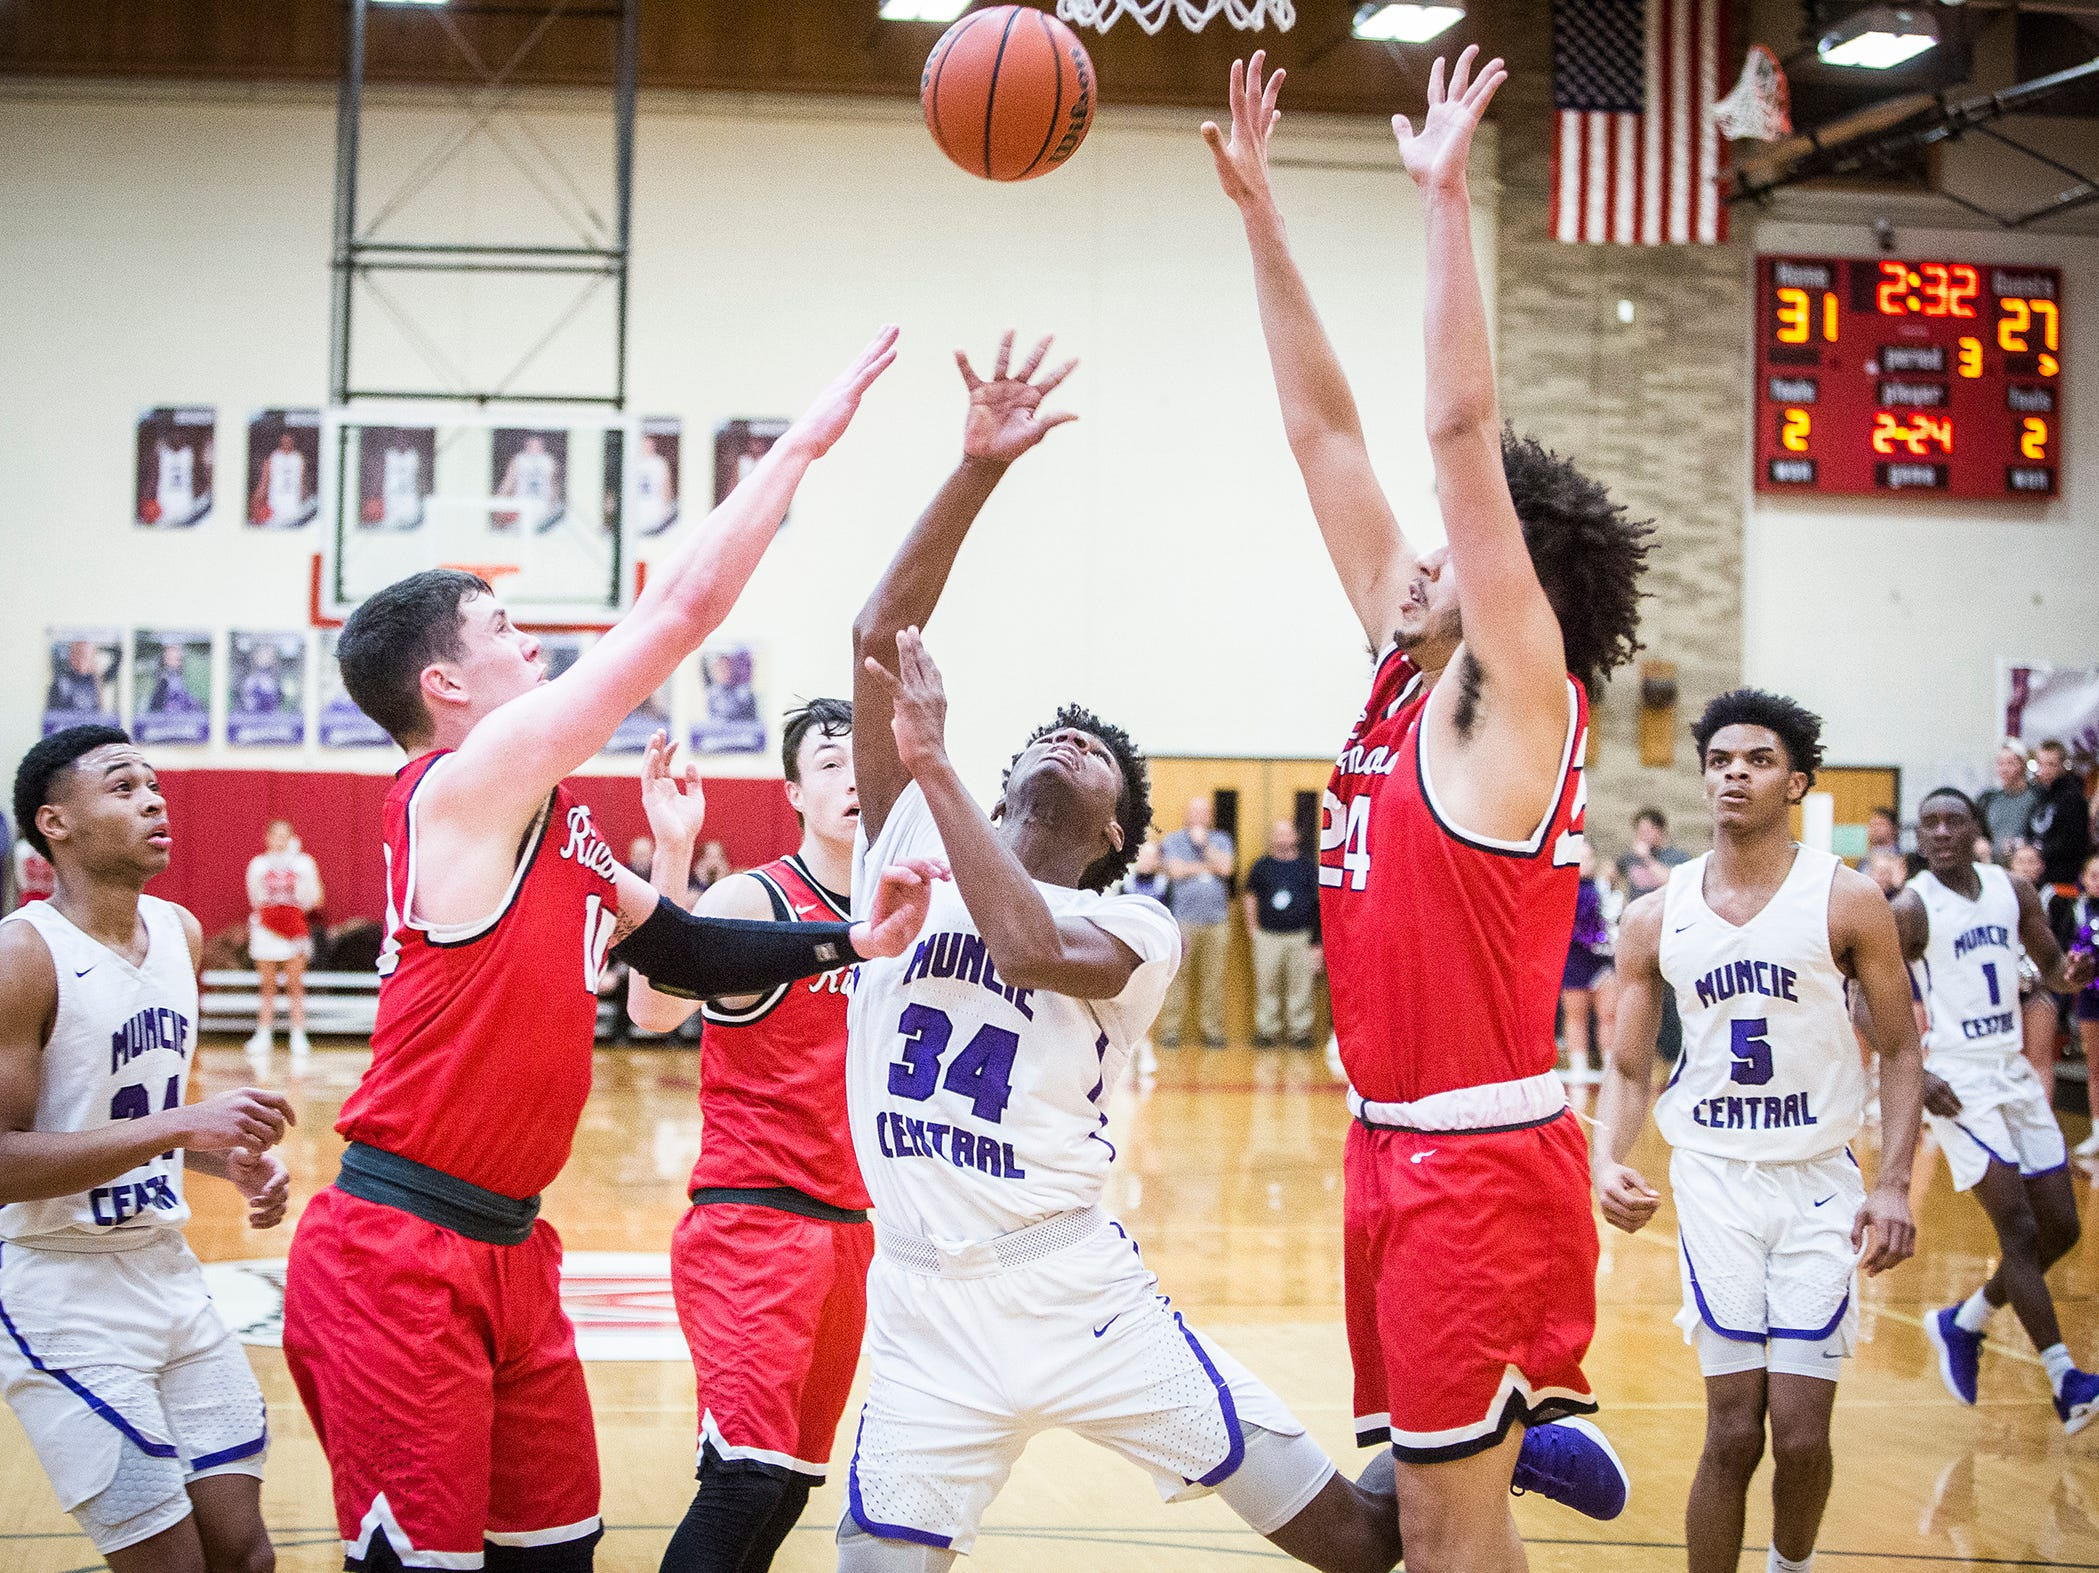 Central defeated Richmond during their game at Southside Middle School Friday, Jan. 11, 2019.